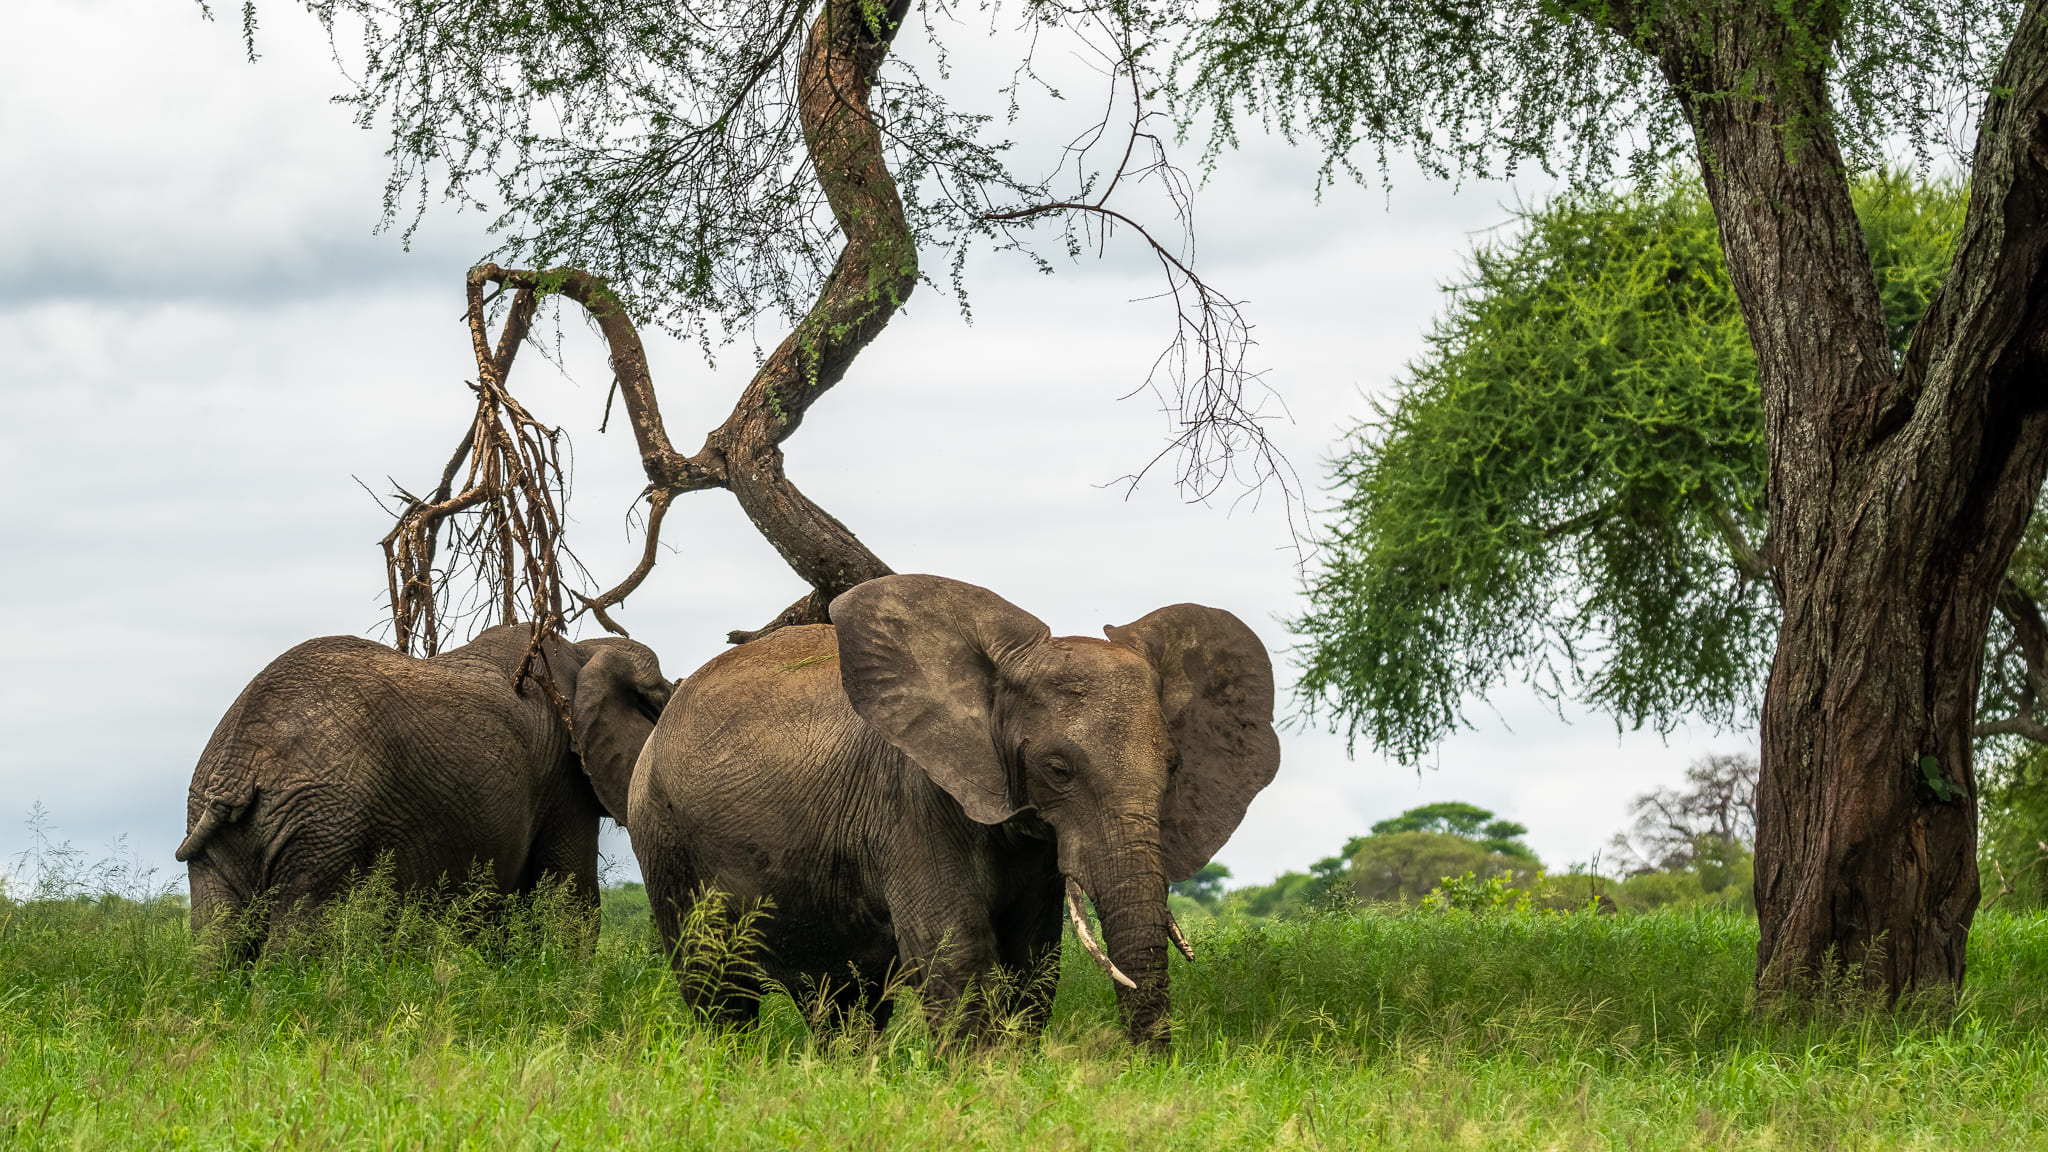 Elephants in front of trees